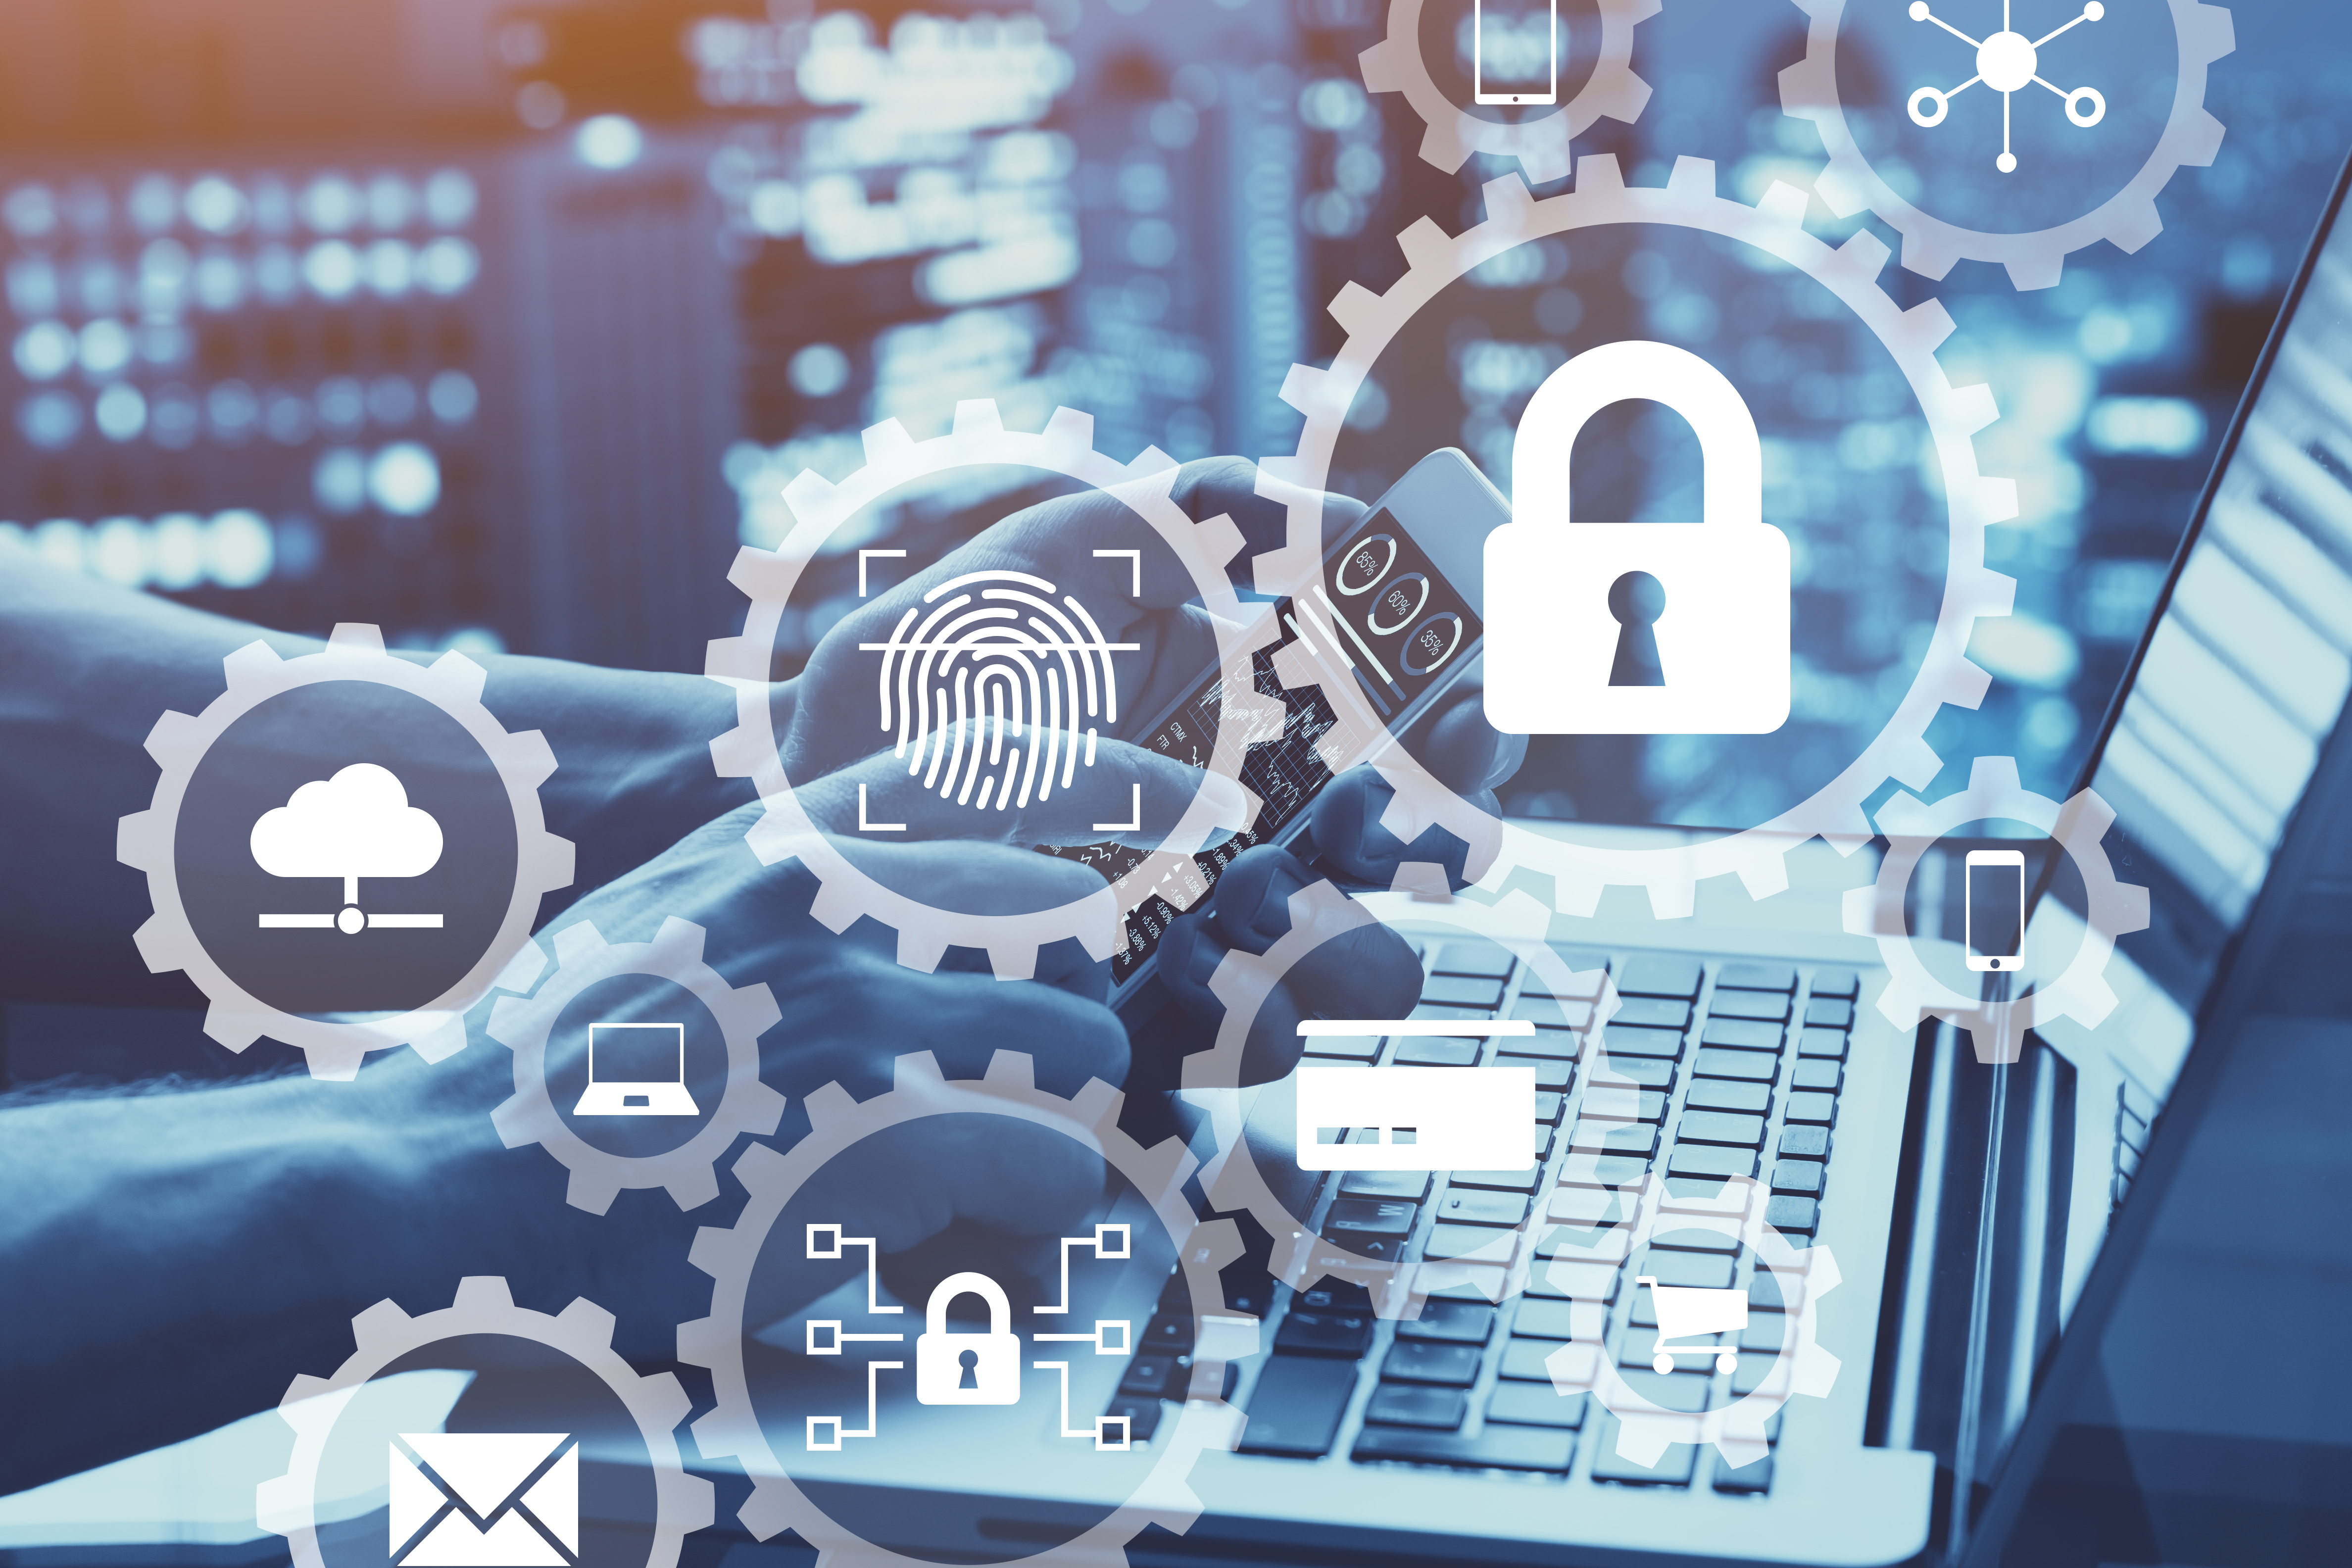 Digital Security: Protect Yourself Online